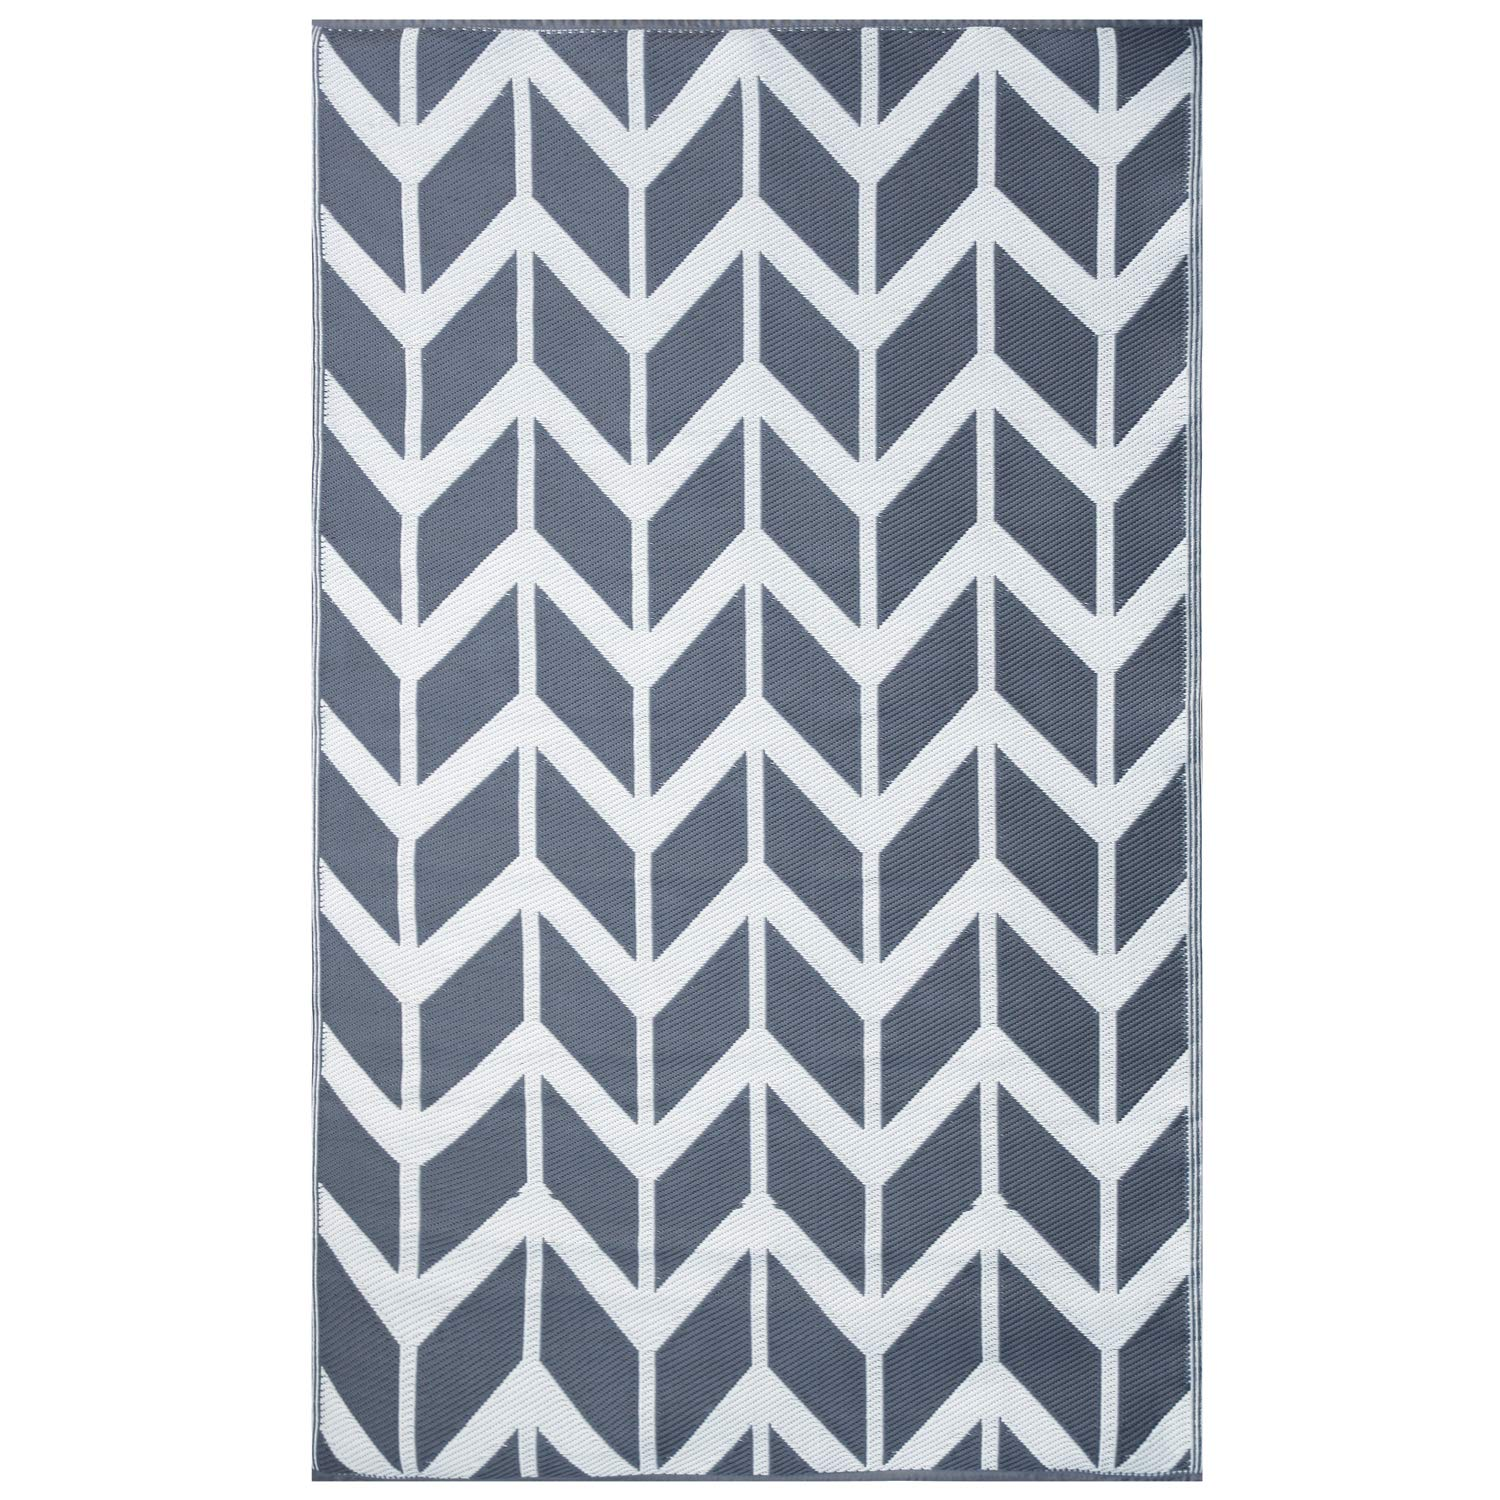 Earth Collective Outdoor Rug For Patio Recycled Plastic Mat Grey White Chevron Reversible Easy Clean Eco Waterproof Uv Mildew Stain Proof Beach Picnic Rv Camping 4 X 6